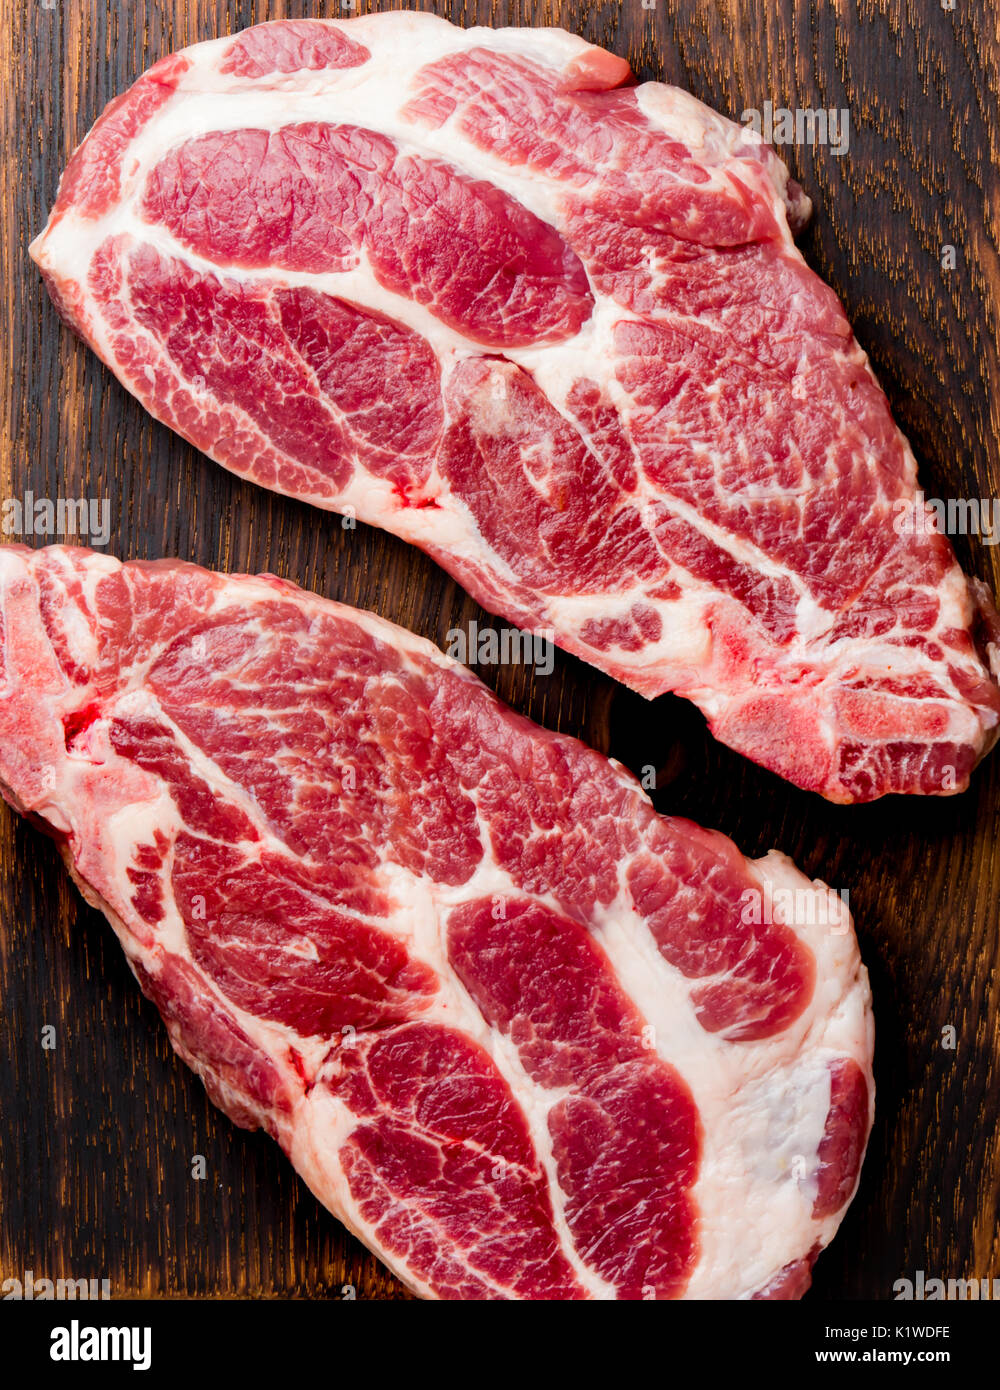 Raw pork cutlet chop for grill BBQ with herbs on wooden board, slate background, top view, copy spaces. - Stock Image